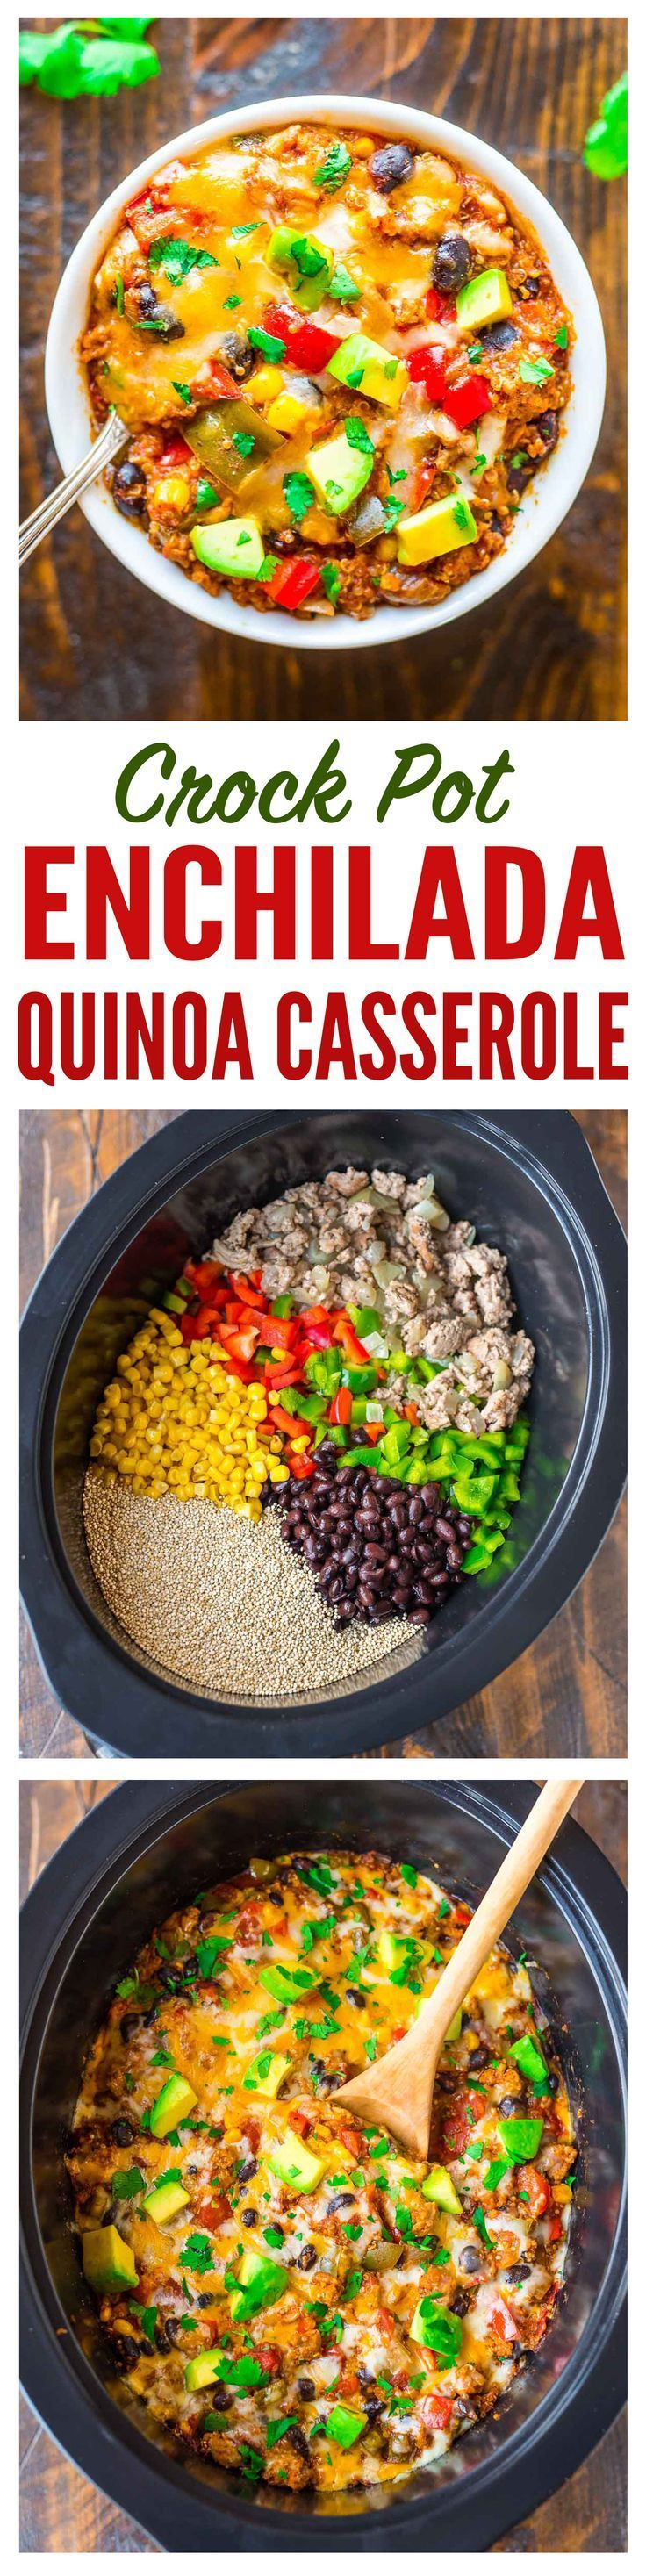 Super easy and DELICIOUS Crock Pot Mexican Casserole with quinoa, black beans, and chicken or turkey. Healthy comfort food, gluten free, and our whole family LOVES it! Recipe at wellplated.com | @wellplated